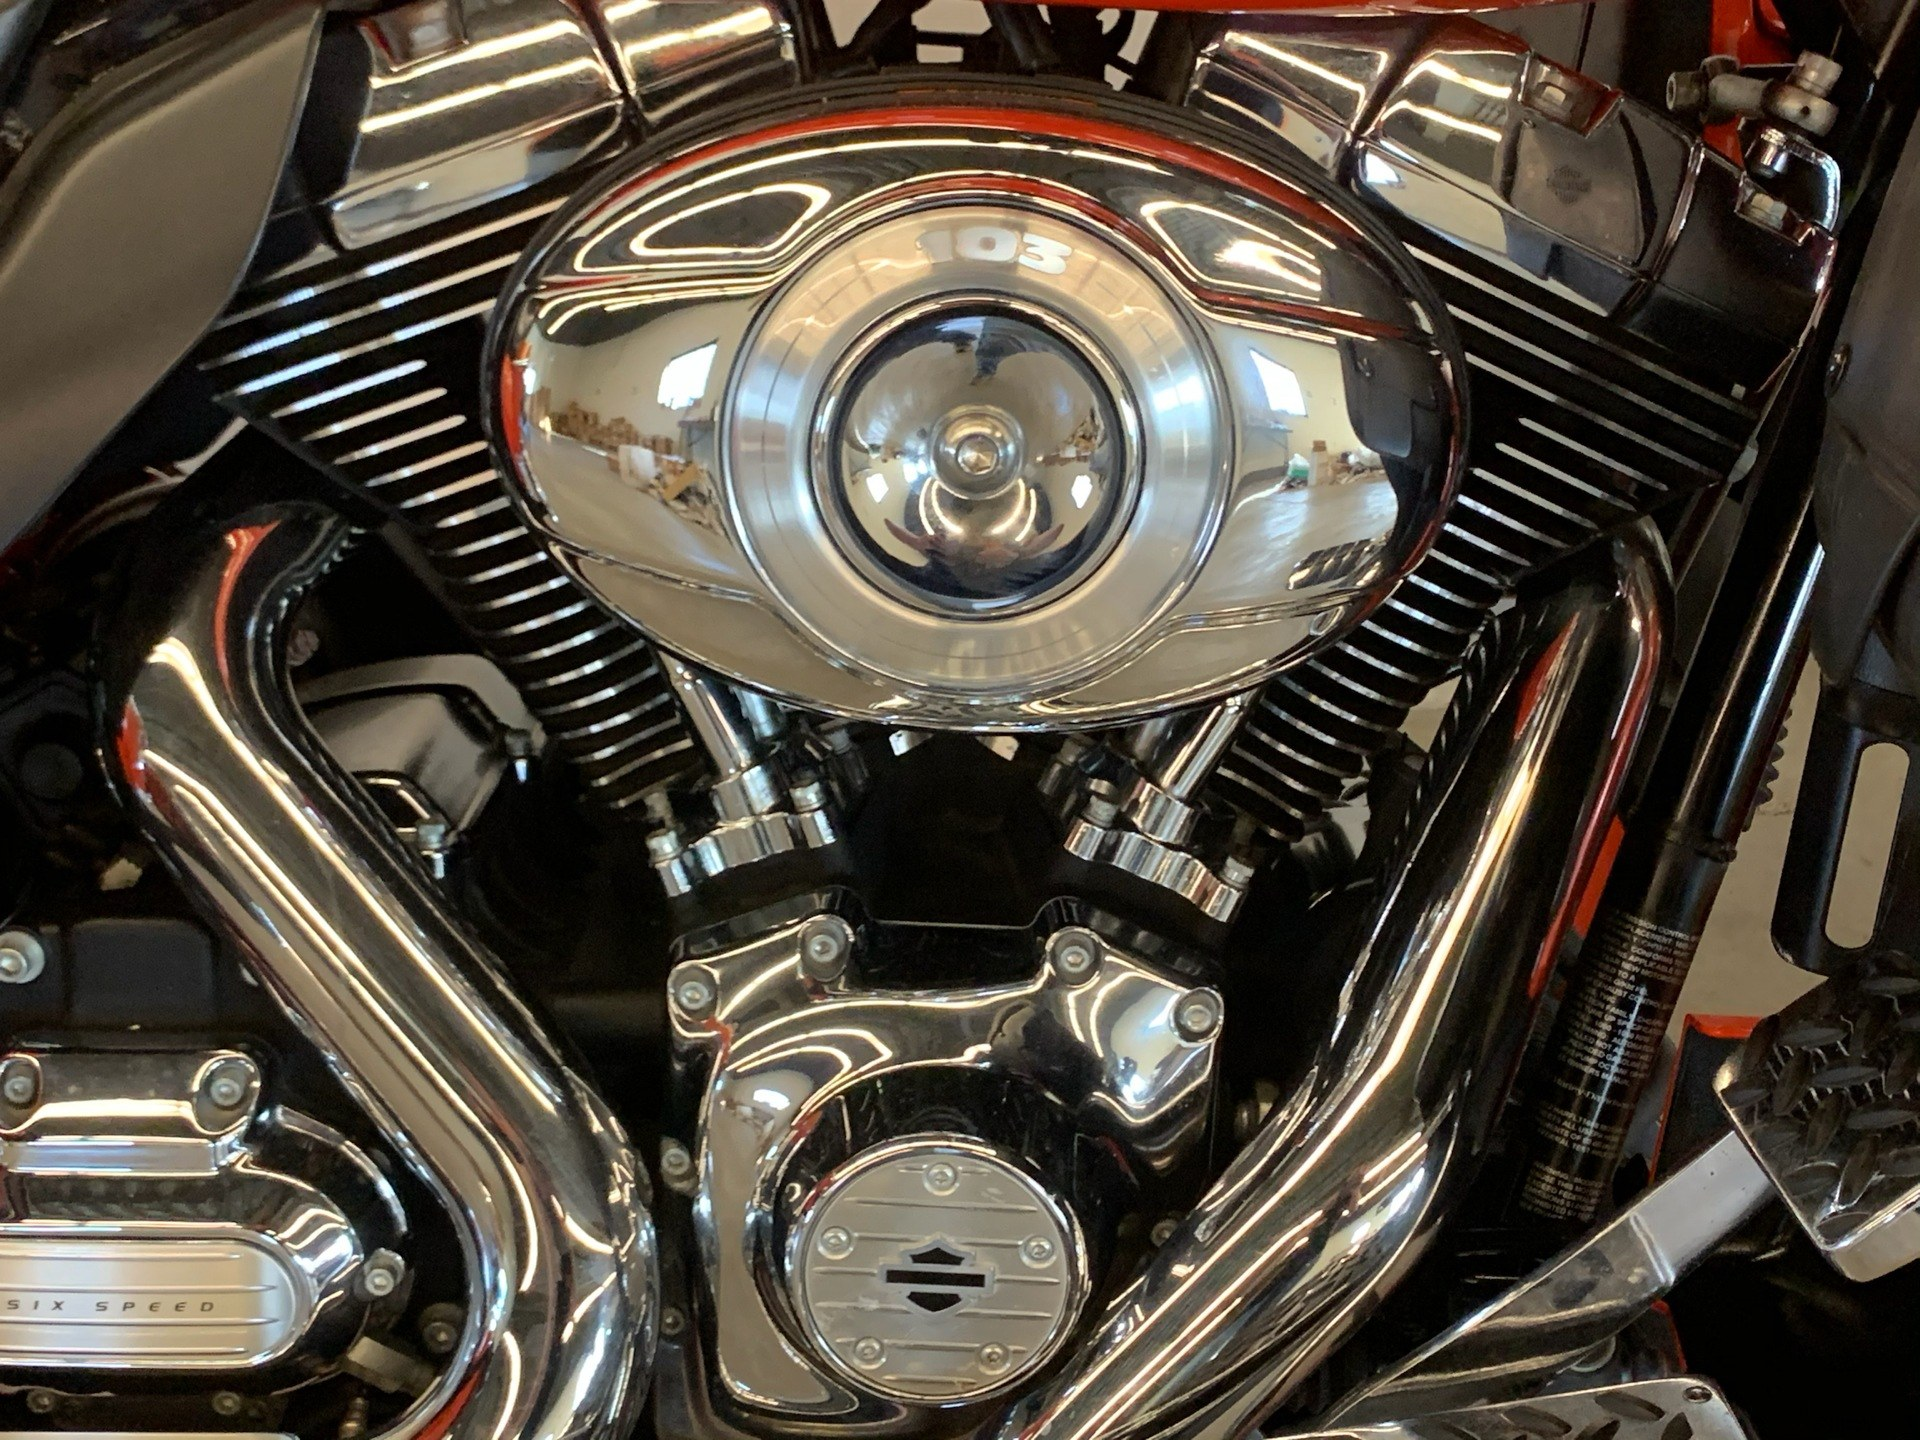 2012 Harley-Davidson Electra Glide® Ultra Limited in Flint, Michigan - Photo 8